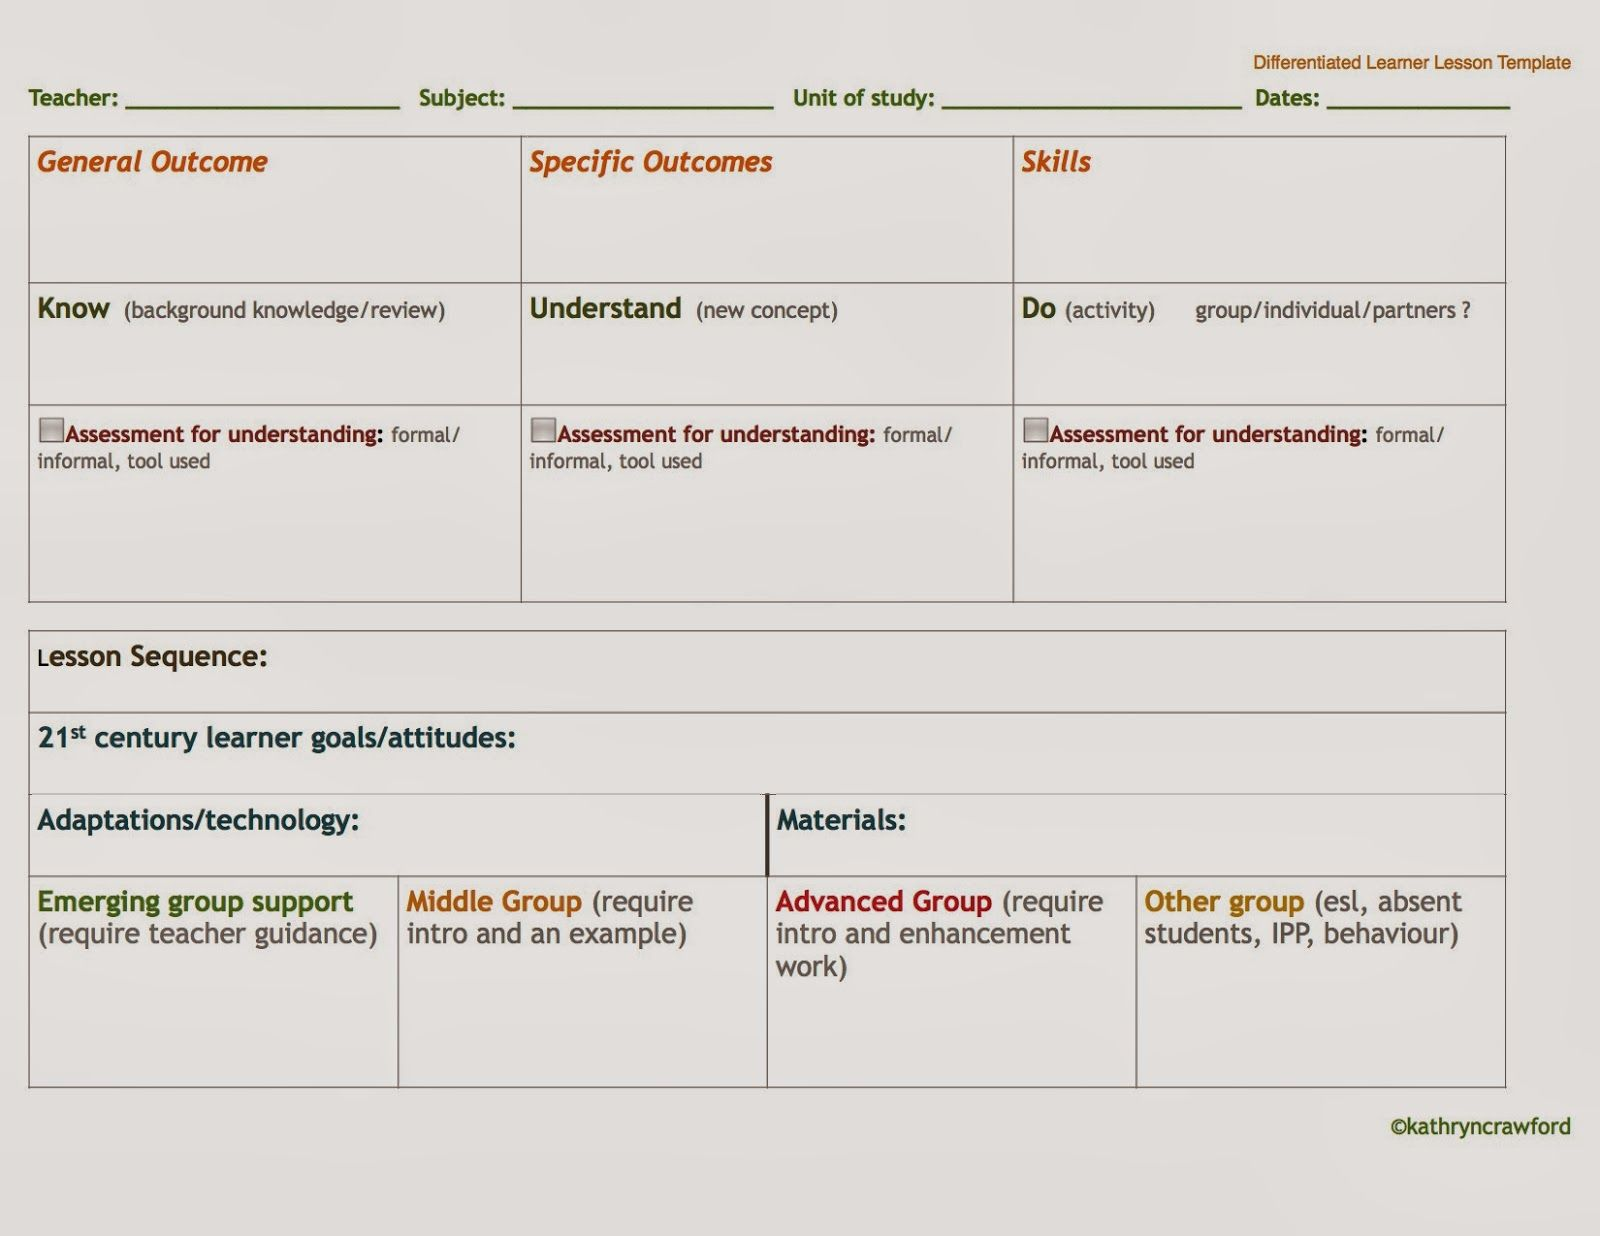 Differentiated Learner Lesson Plan Template Differentiated Lesson Plans Lesson Plan Templates Differentiated Lesson